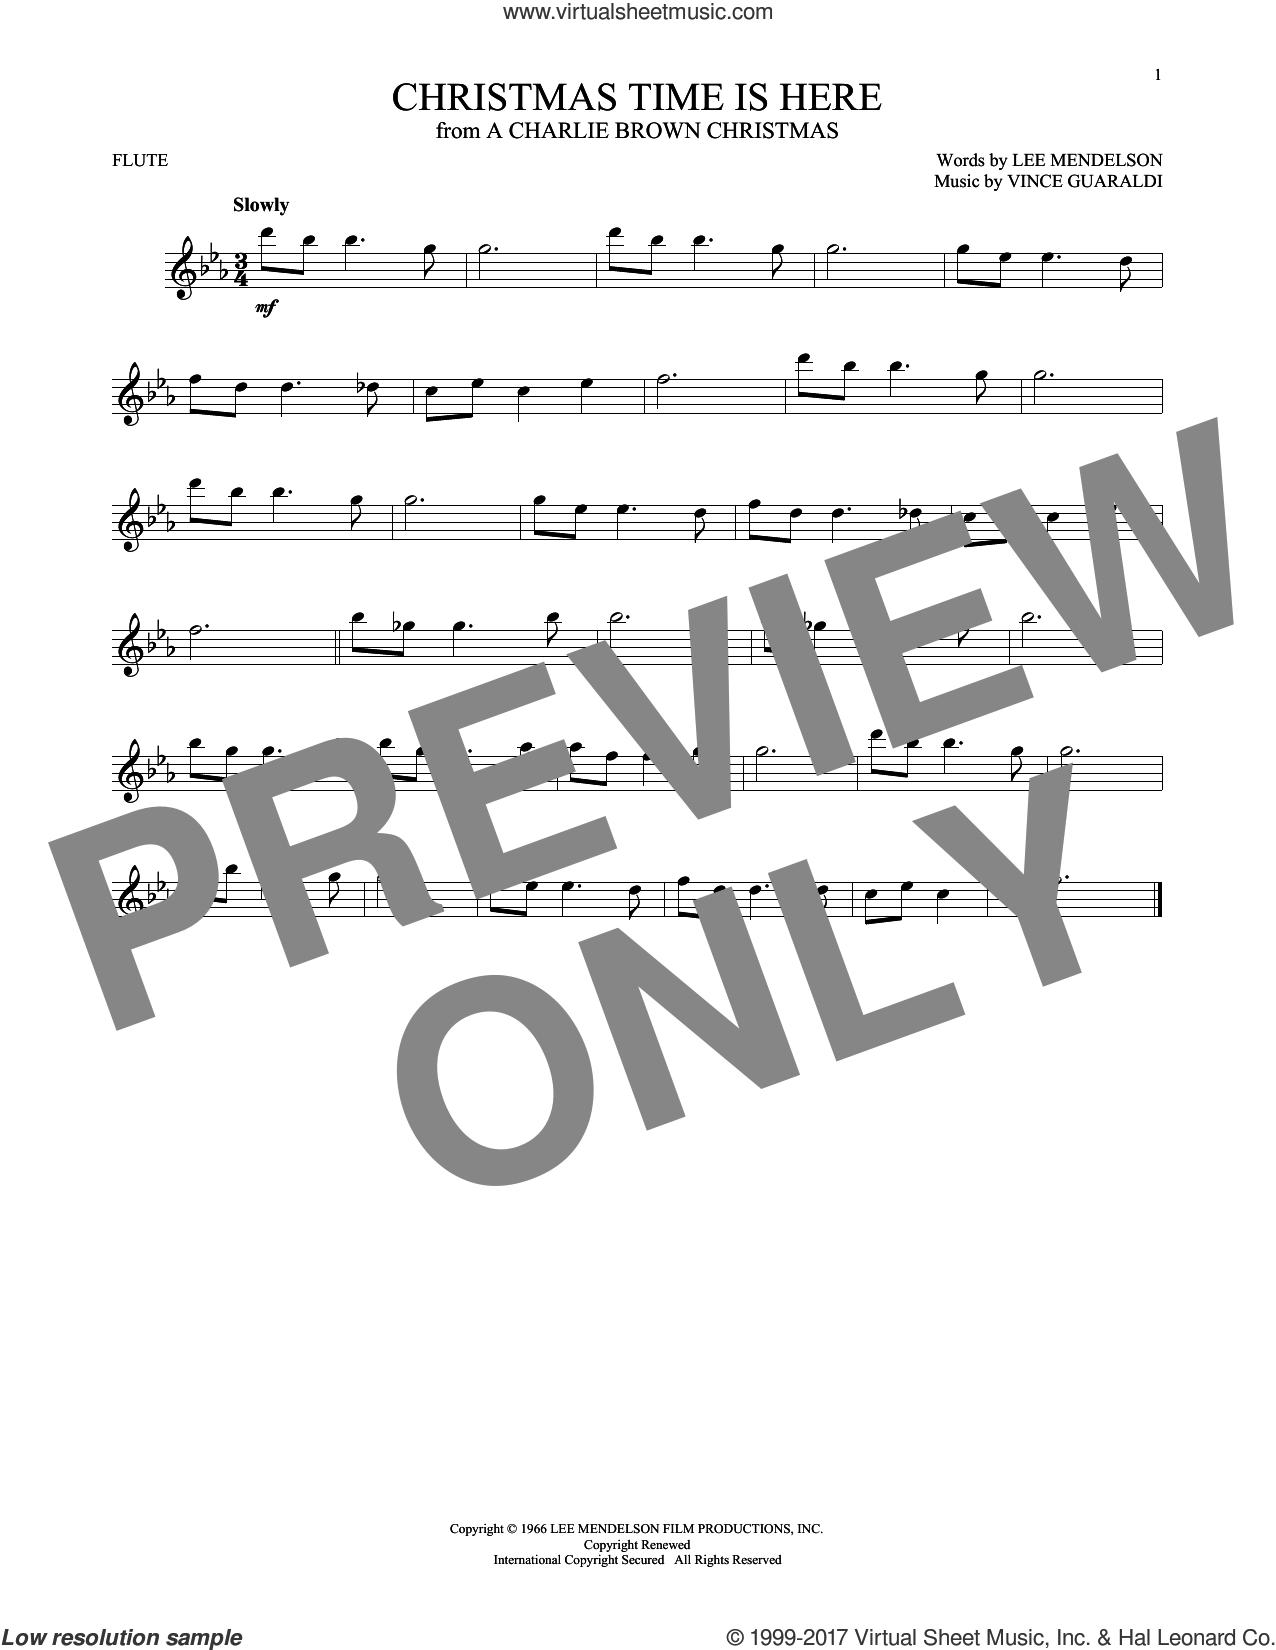 Christmas Time Is Here sheet music for flute solo by Vince Guaraldi and Lee Mendelson, intermediate skill level